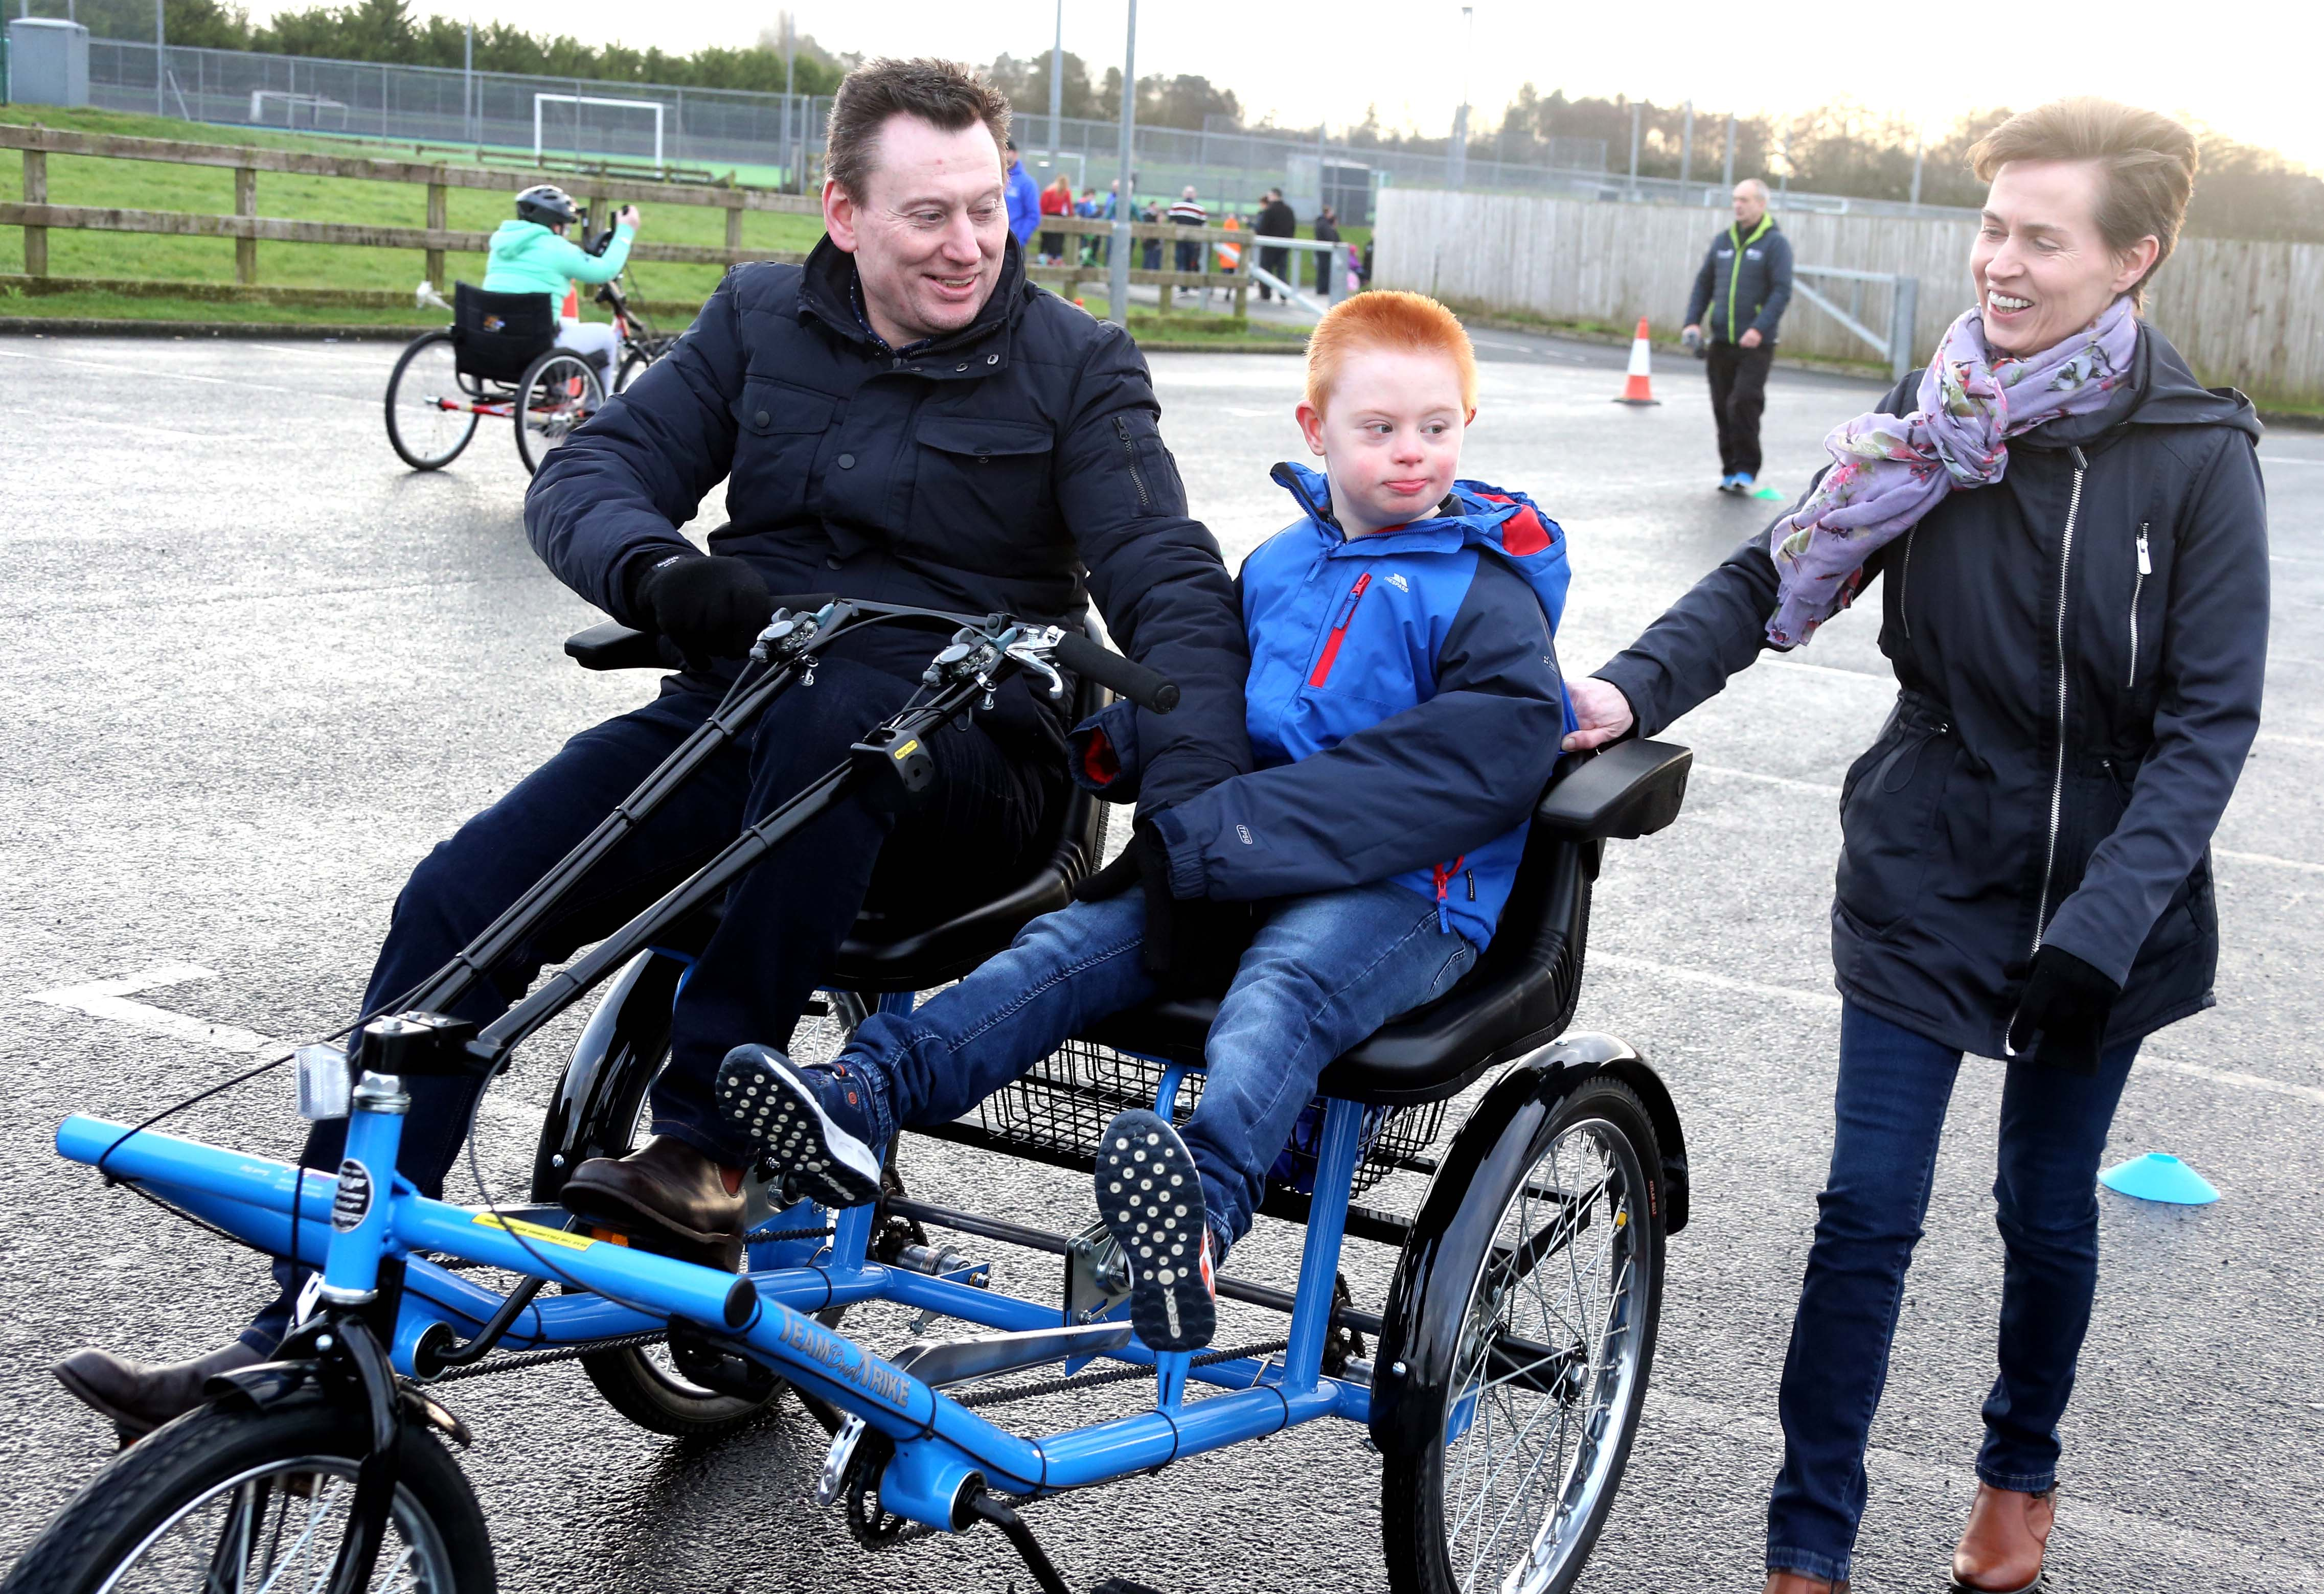 A family taking part in inclusive cycling